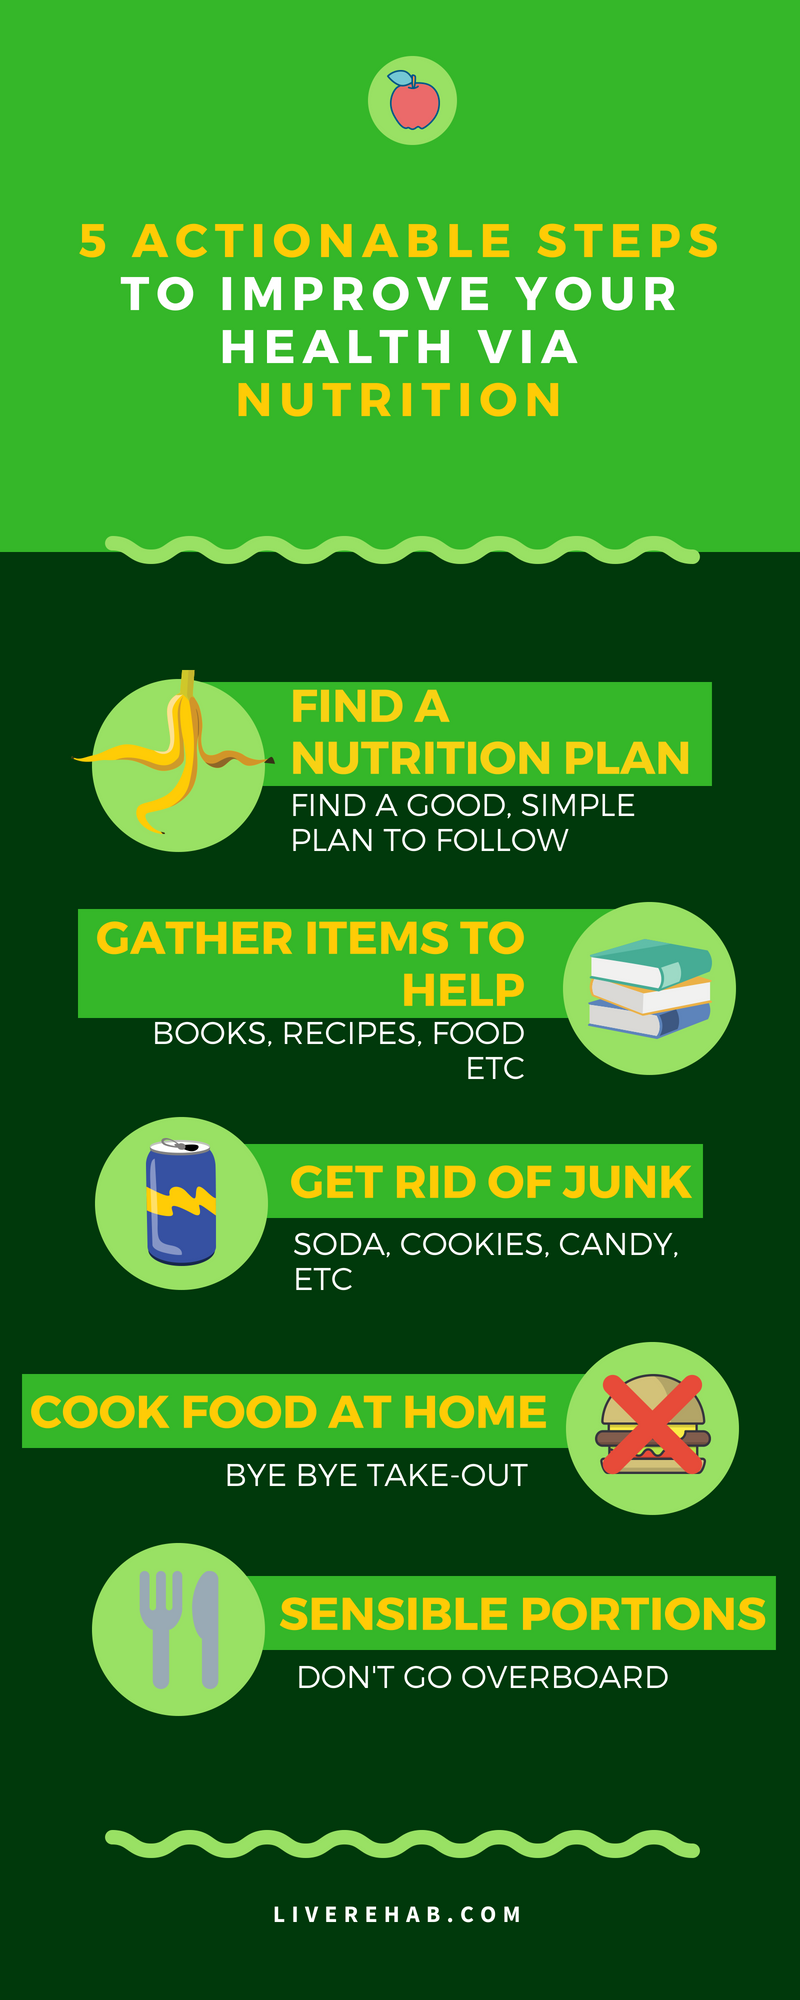 Actionable Steps to Improve Nutrition